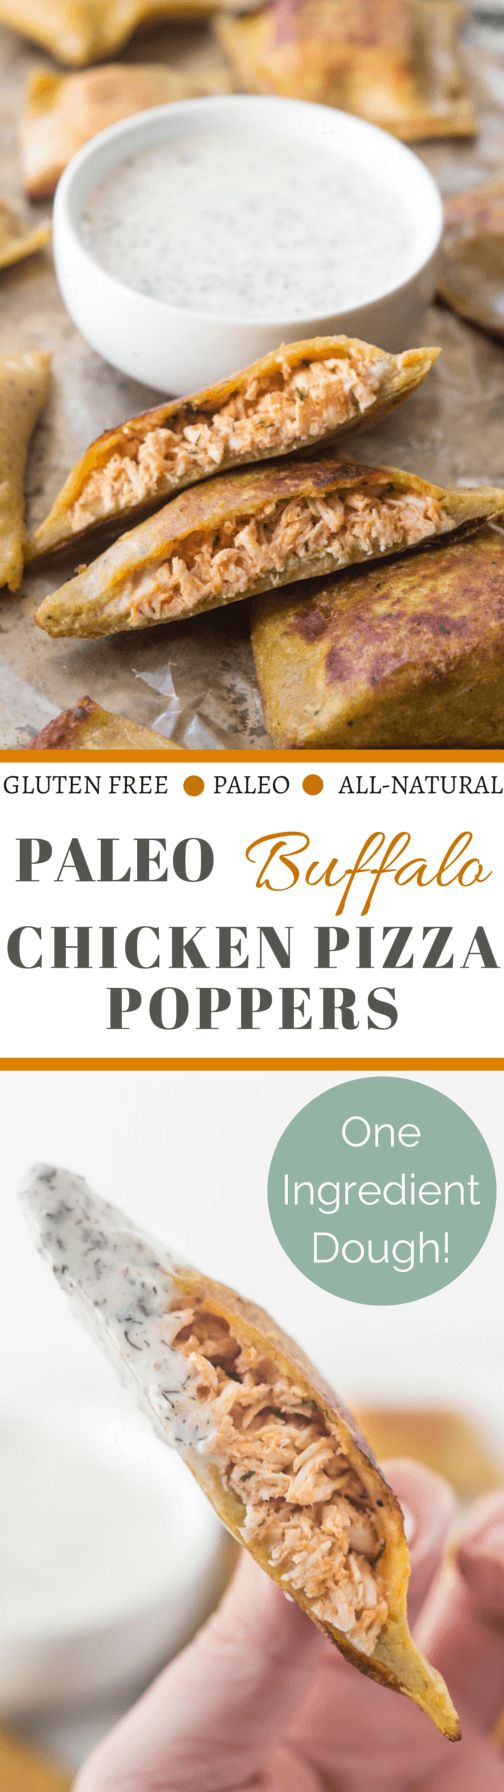 Paleo Buffalo Chicken Pizza Poppers - one ingredient dough! Plus they're served with a ridiculously good Paleo ranch dressing! A great Paleo appetizer recipe!